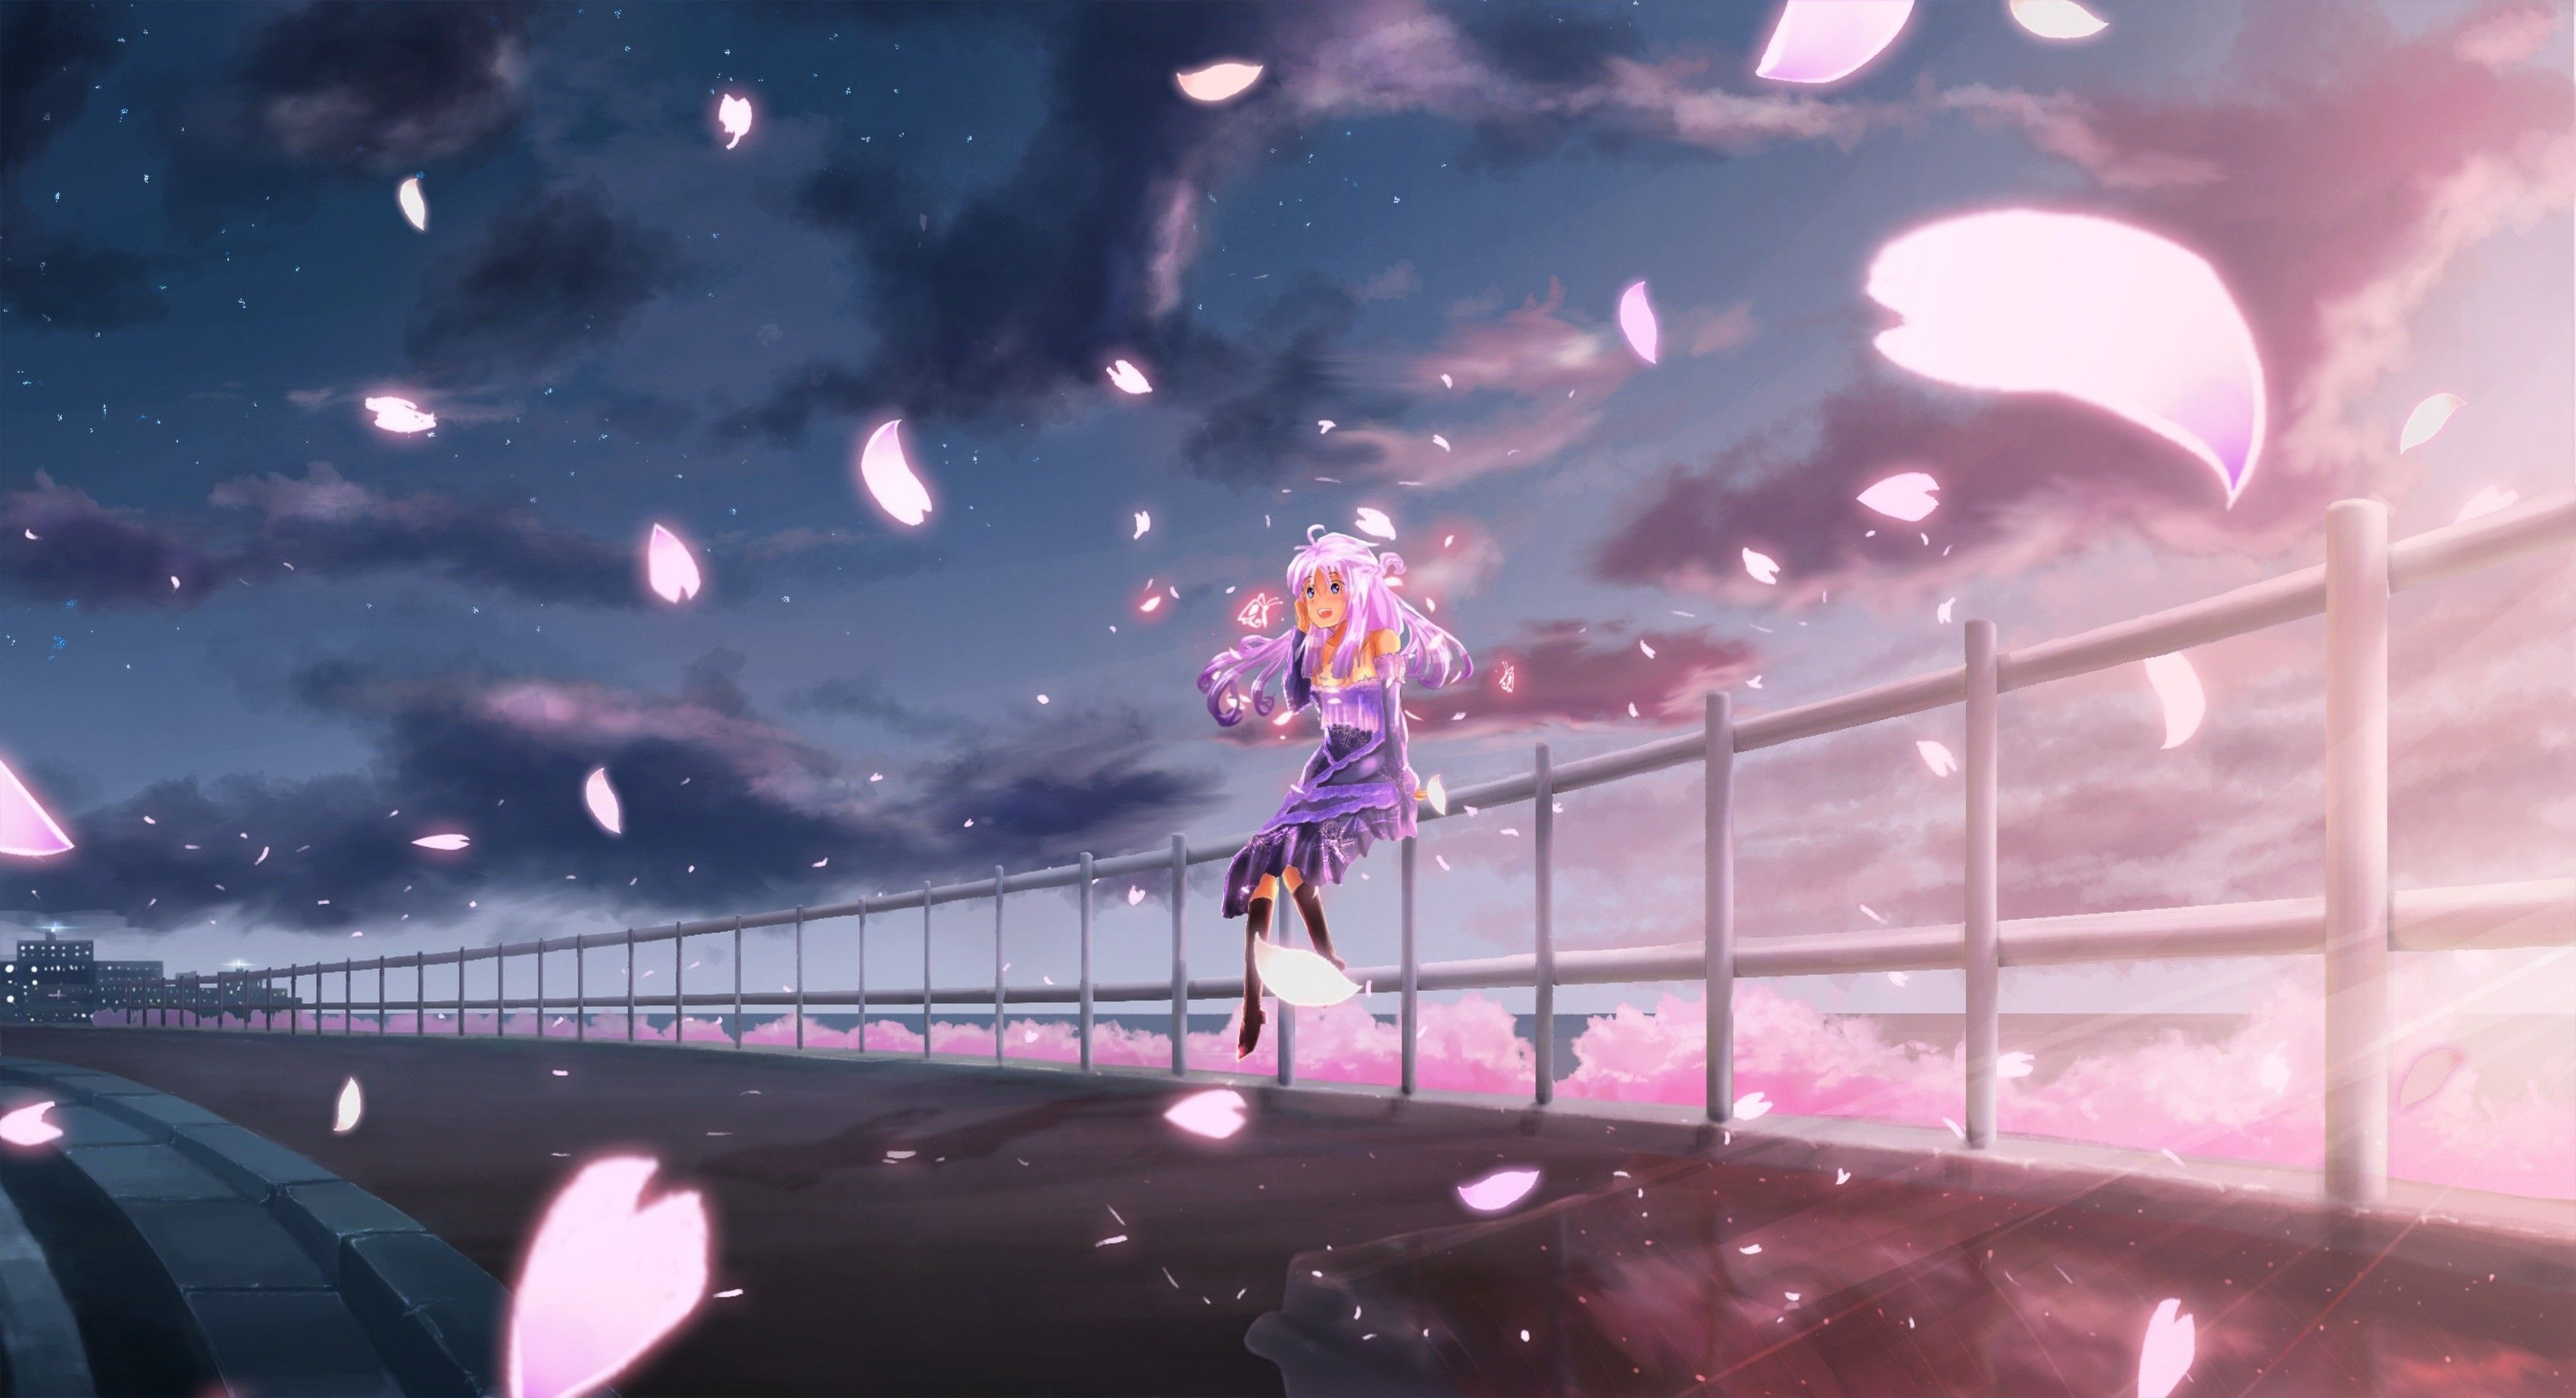 3400x1845 Anime 3400x1845 cherry blossom sky clouds anime